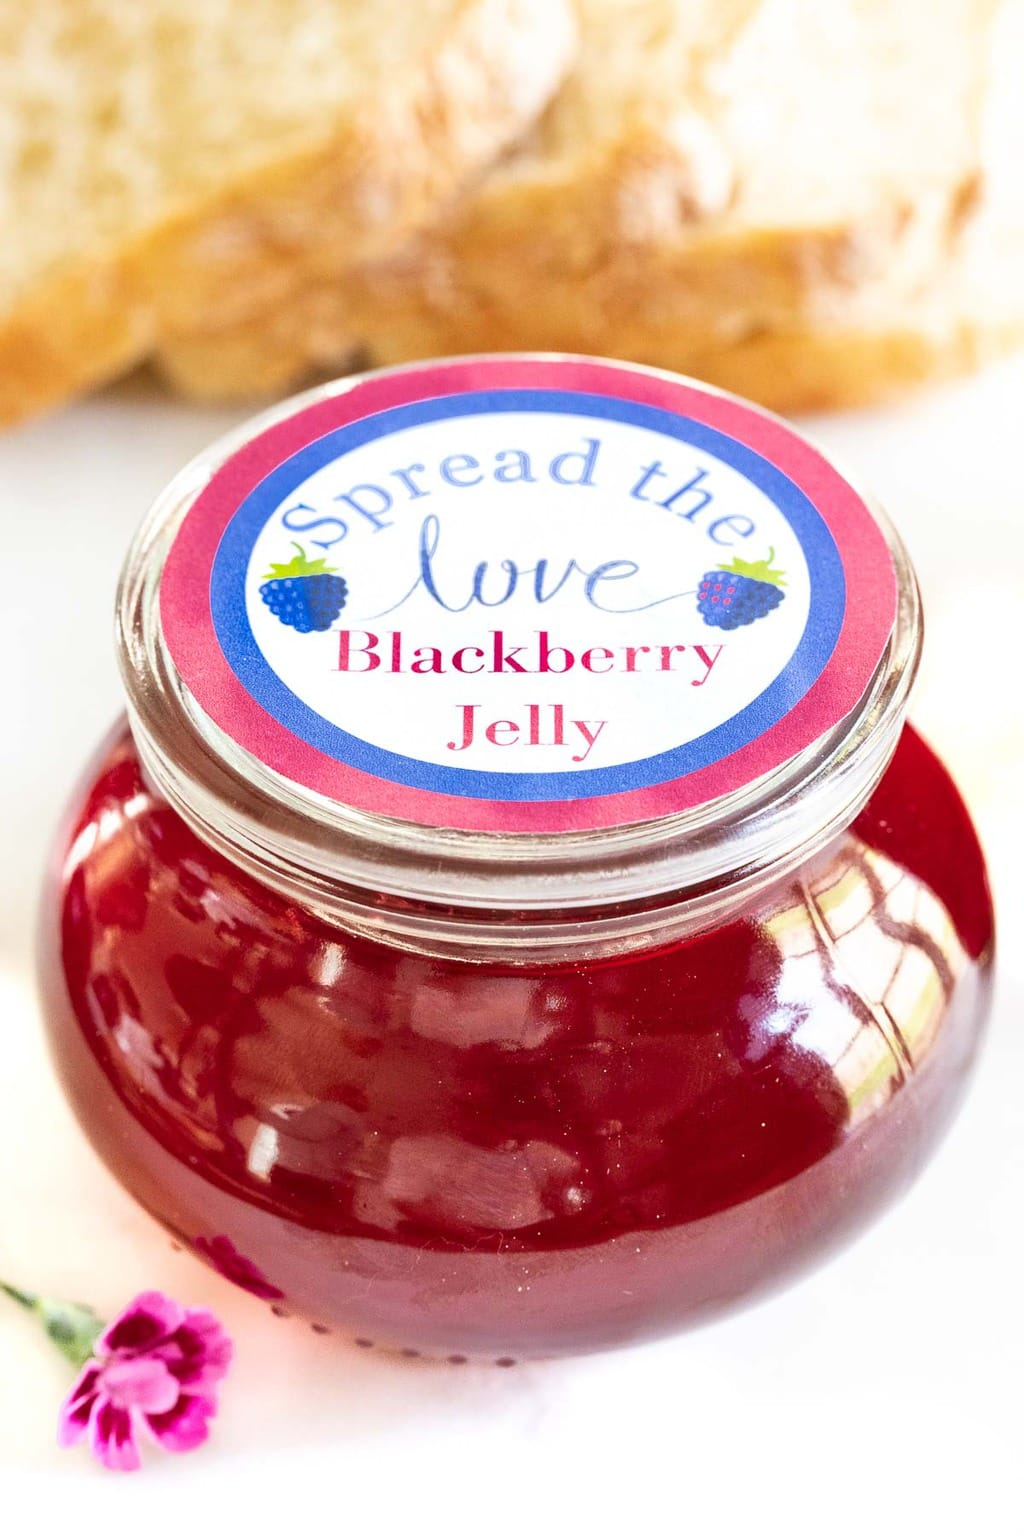 Vertical closeup photo of a glass Weck jar of Easy Blackberry Jelly with a custom gift label on top.